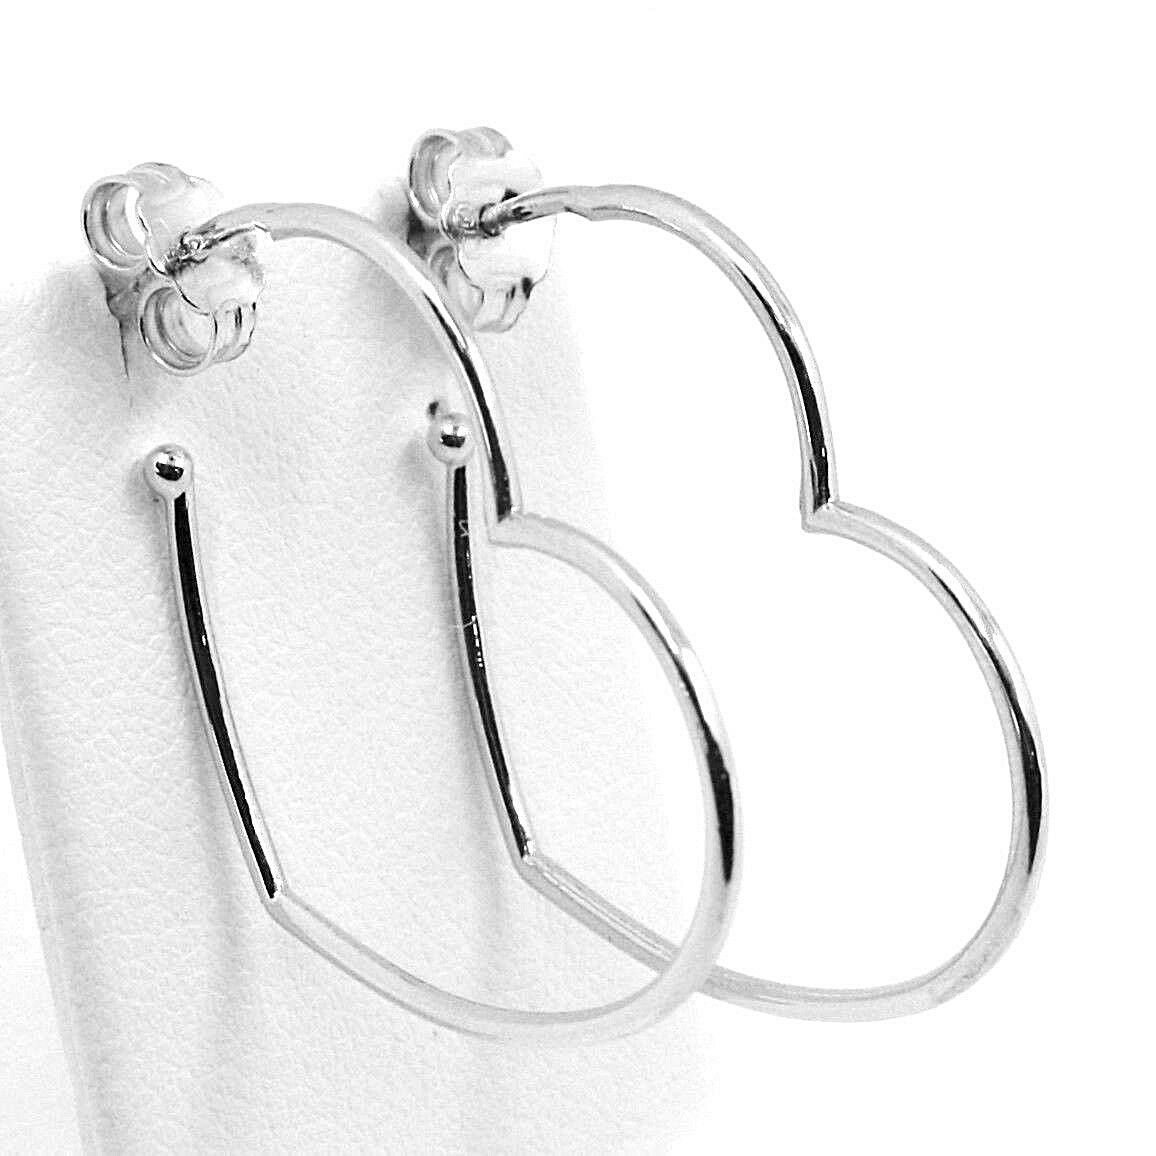 White Gold Drop Earrings 750 18k, Hearts, Length 2.9 cm, Made in Italy